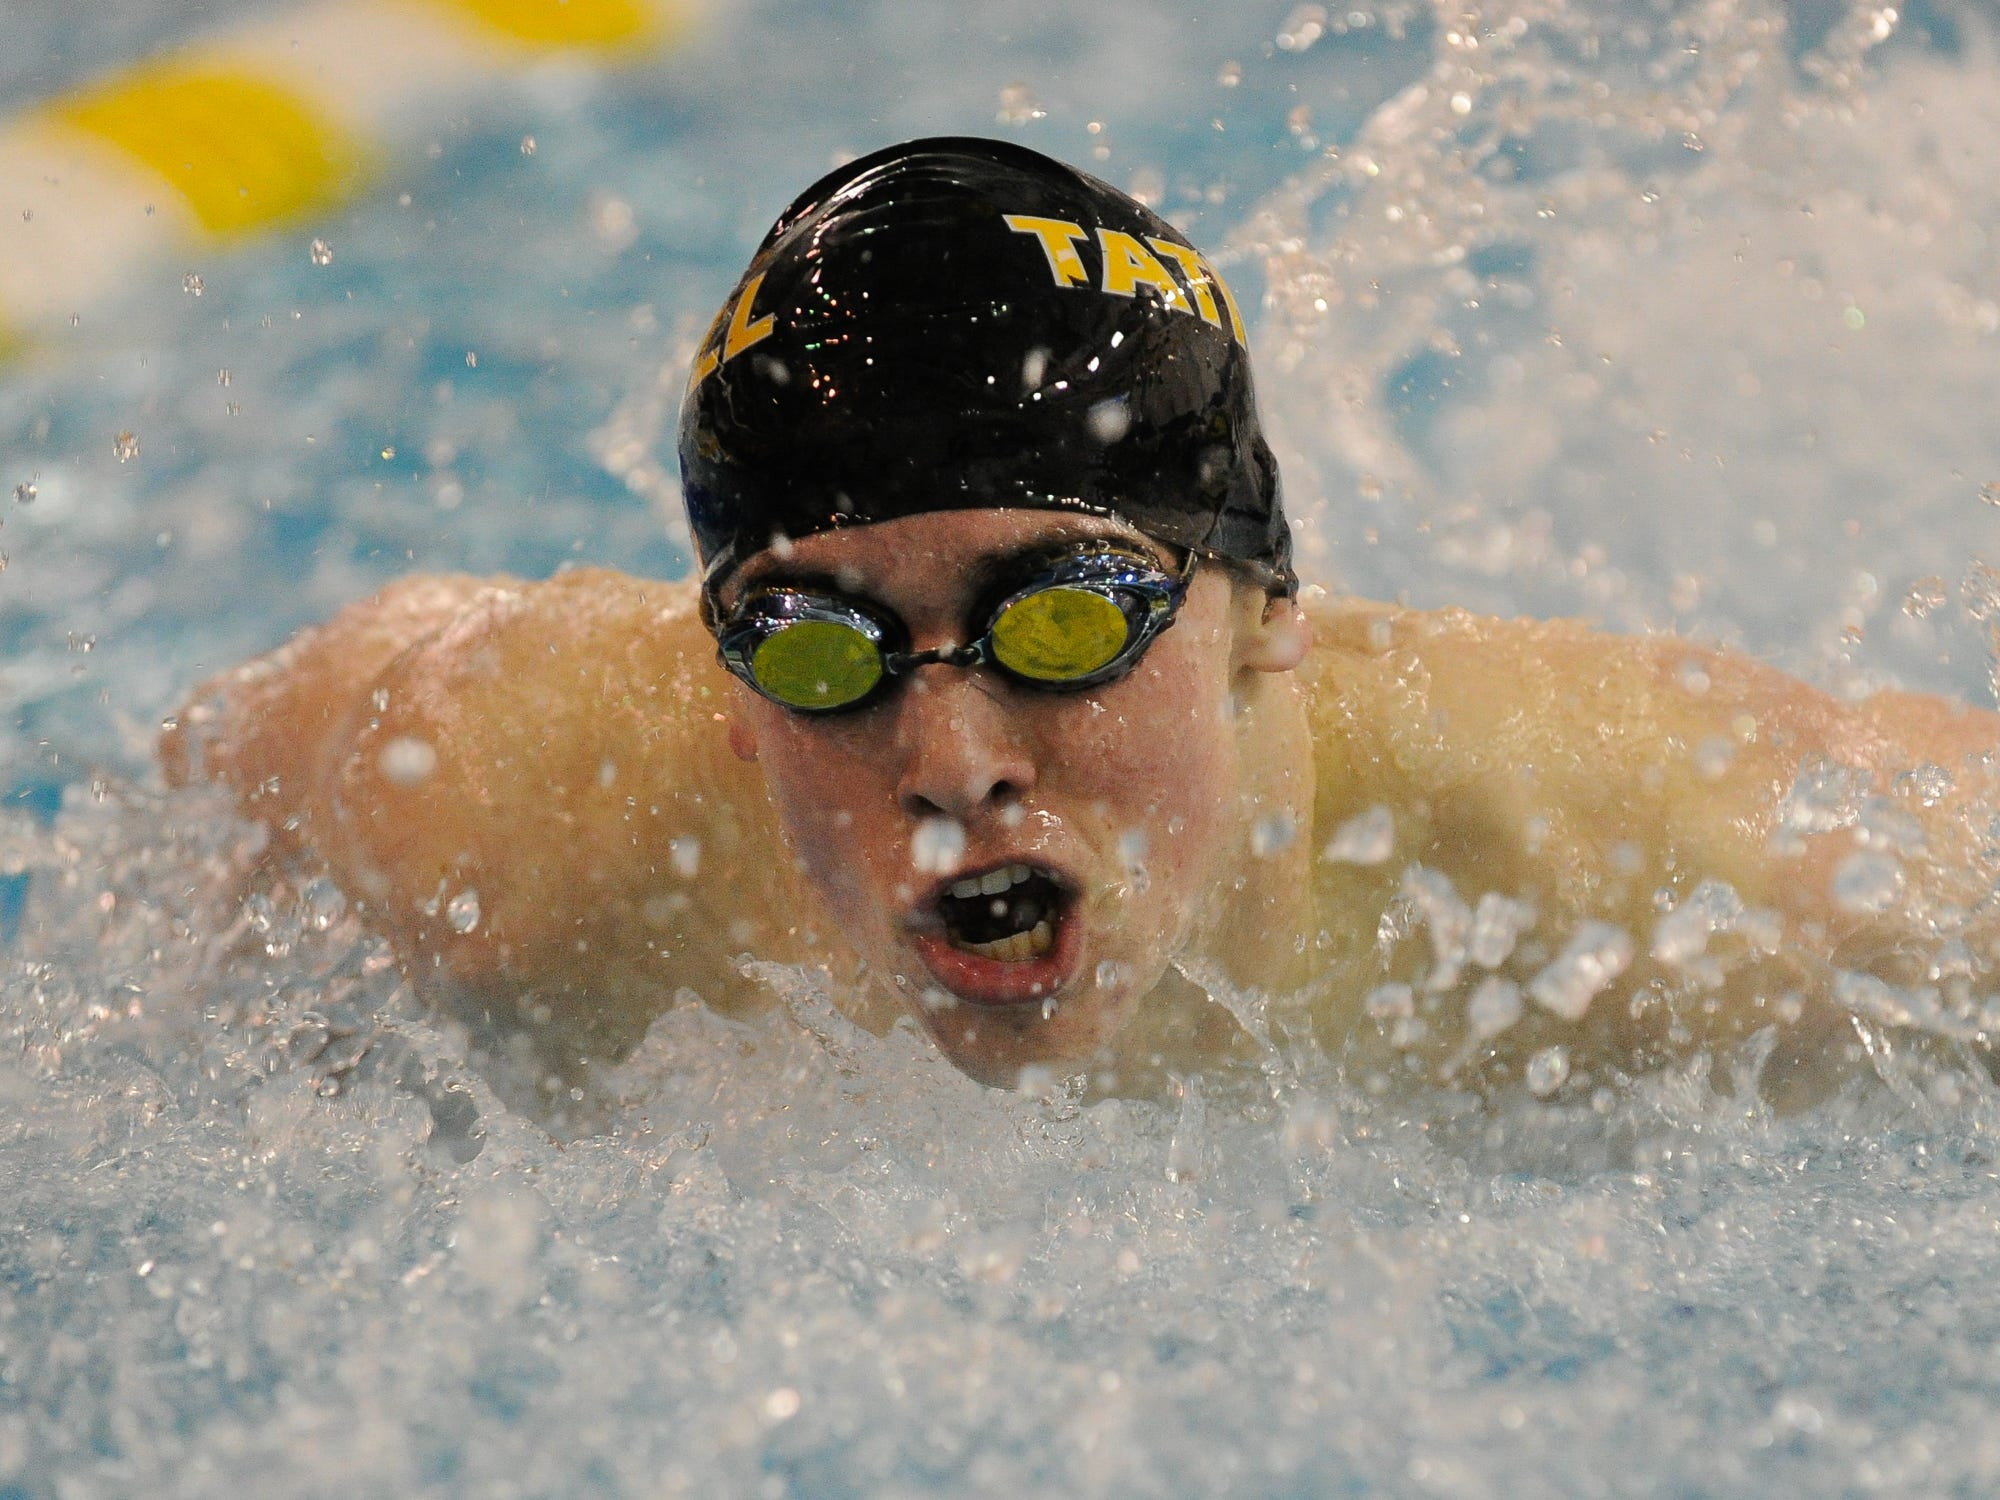 Tatnall's David Crossland sets a state record in winning the 100-yard butterfly at the state meet on Feb. 28.